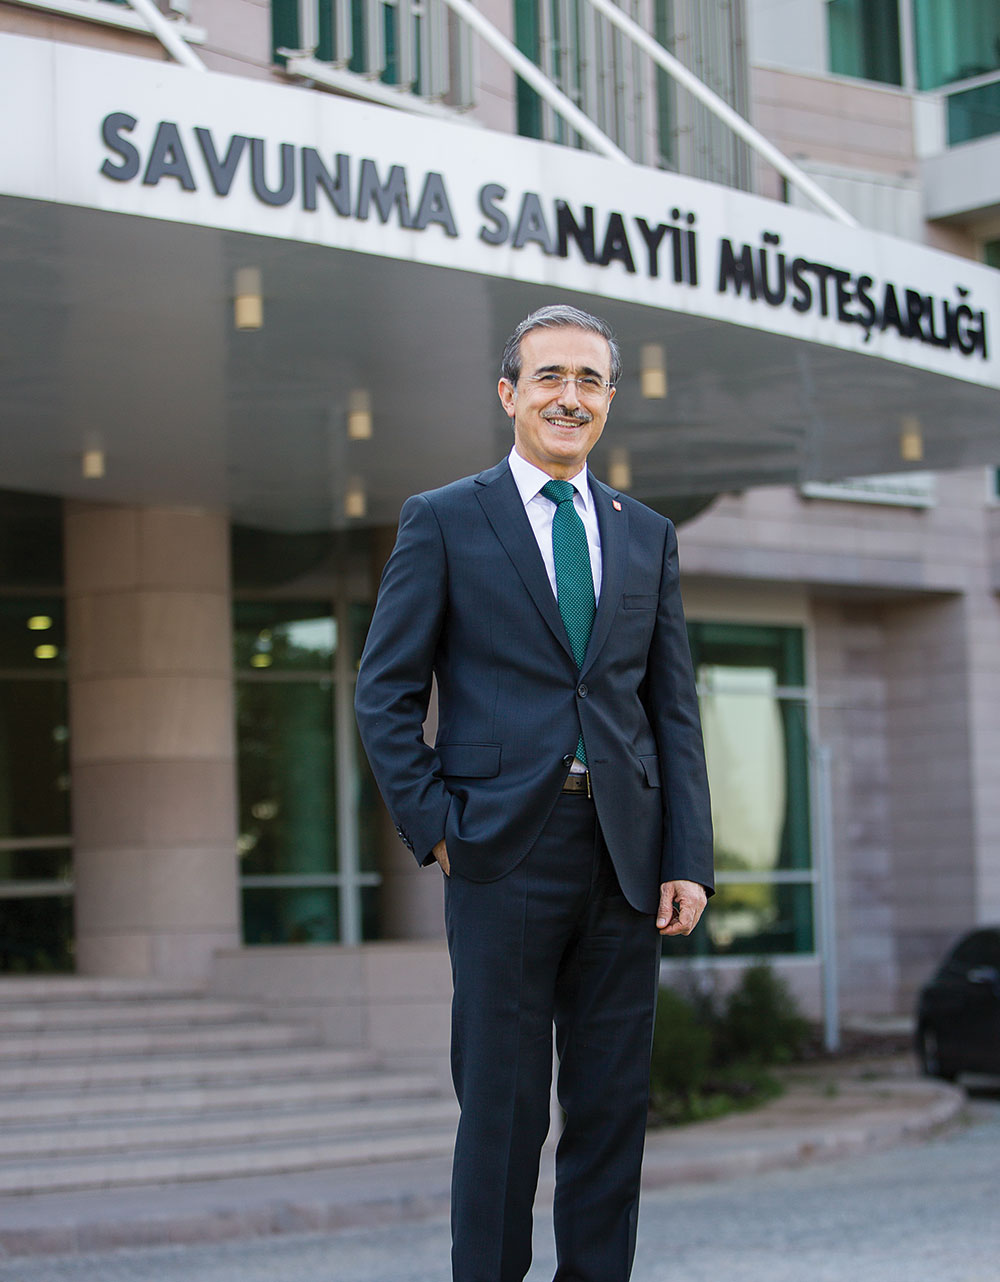 SSM - Breaking down Barriers, Building National Strength in Technology & Export Infrastructures, Promoting Side Sectors, Utilizing Expertise for the Future & Independence of Turkey